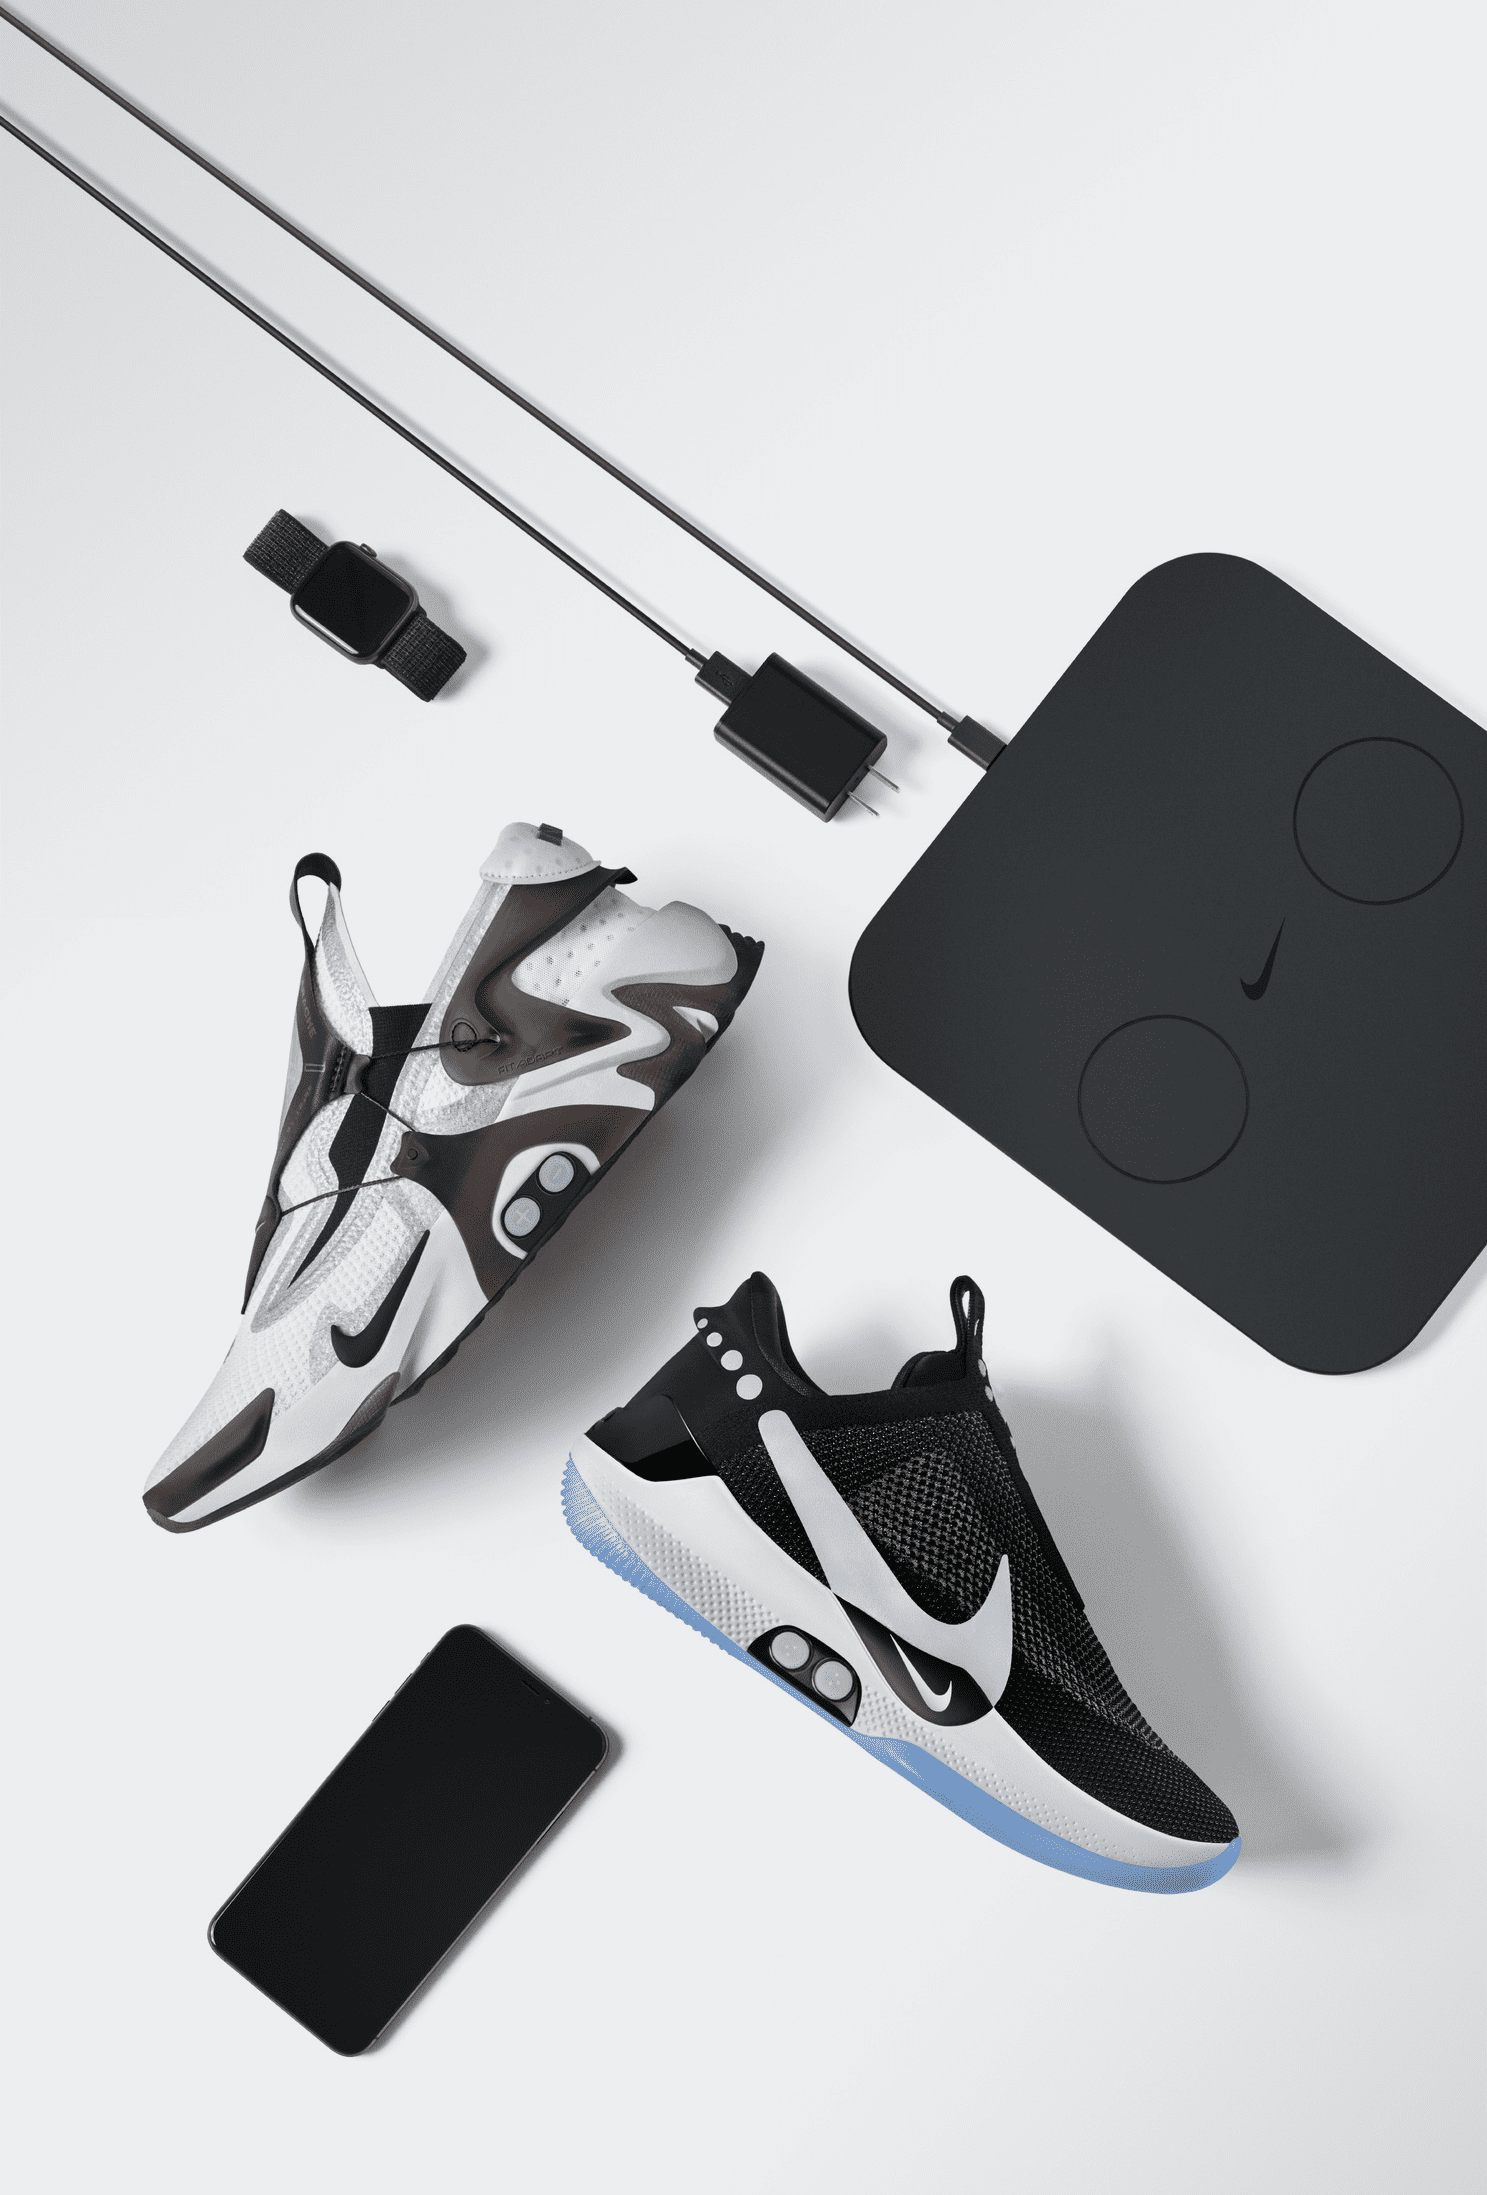 How Do I Charge My Nike Adapt Shoes